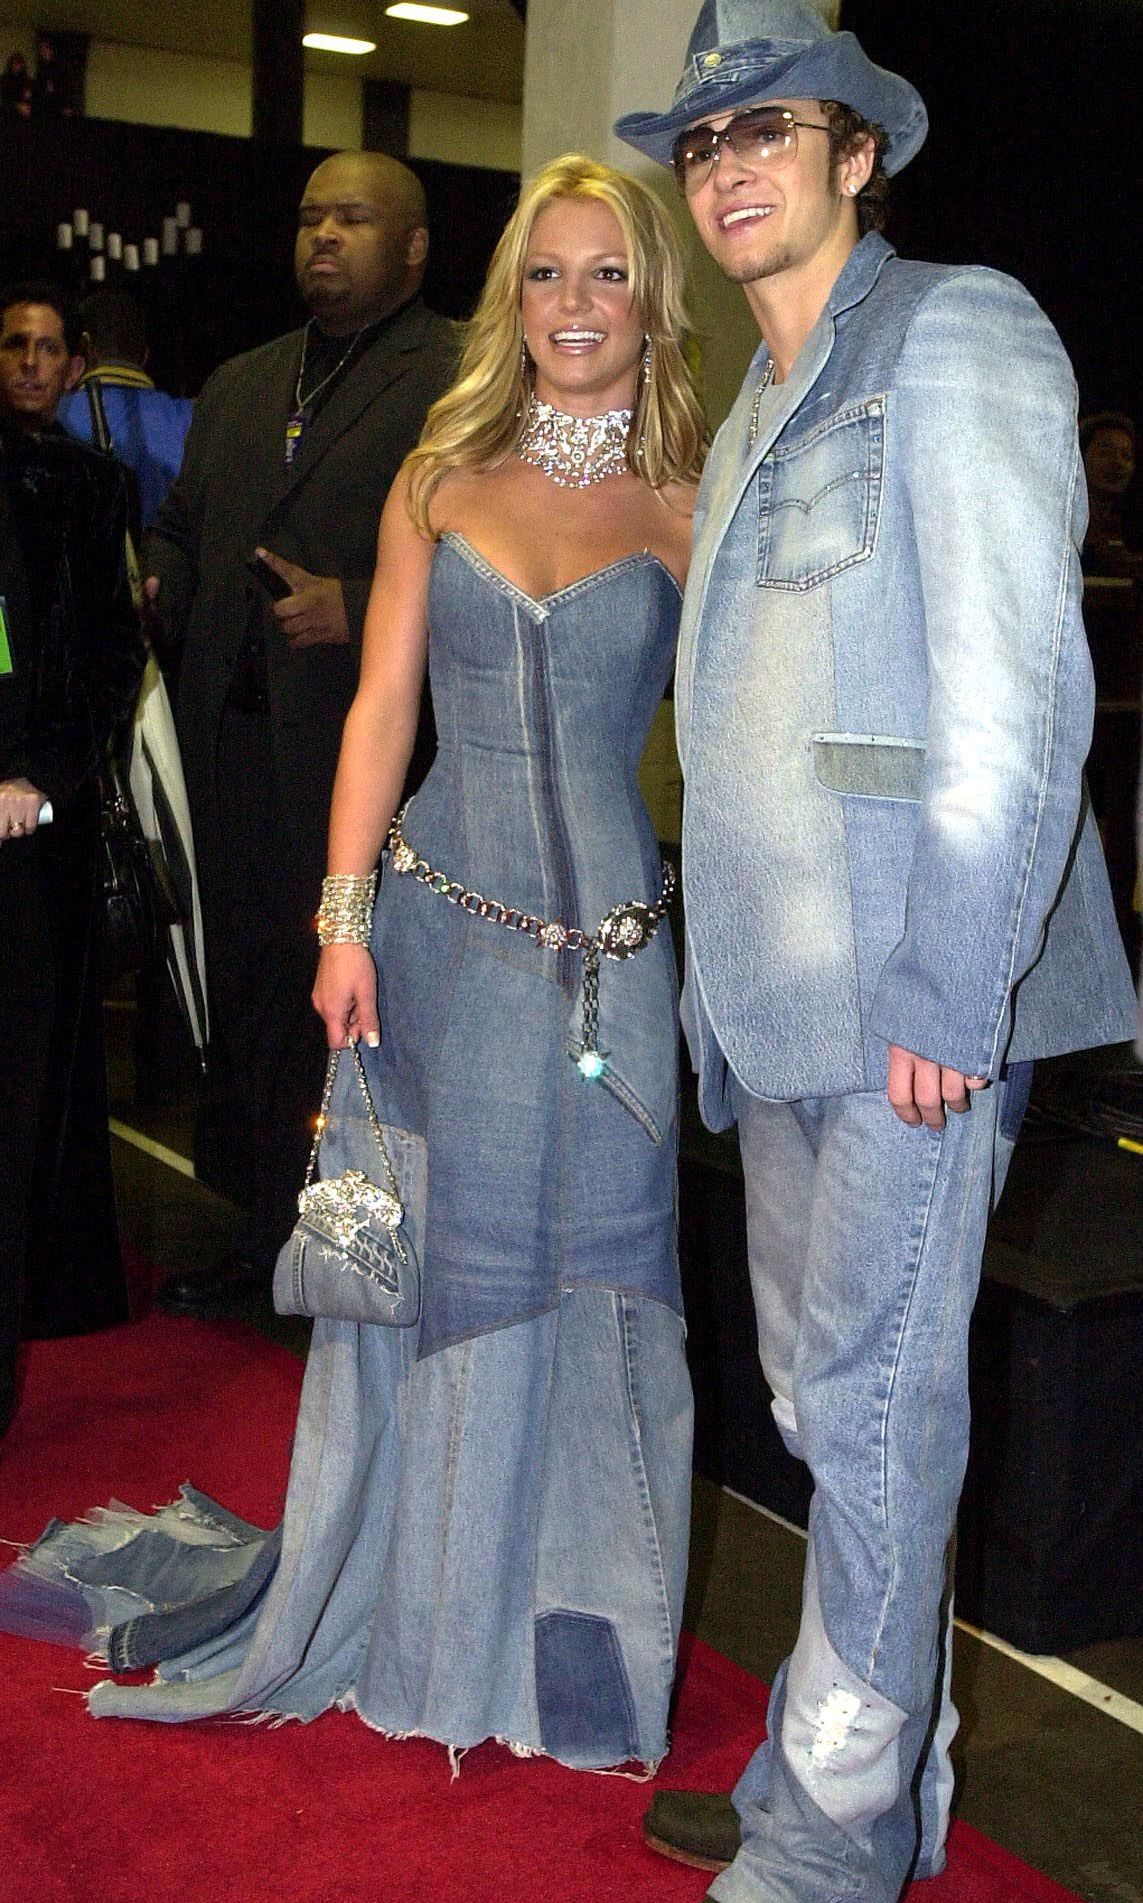 The first and most iconic coordinated look that comes to mind is a Canadian tuxedo moment a la Britney Spears and Justin Timberlake – a.k.a prom king and queen of the 2001 American Music Awards.